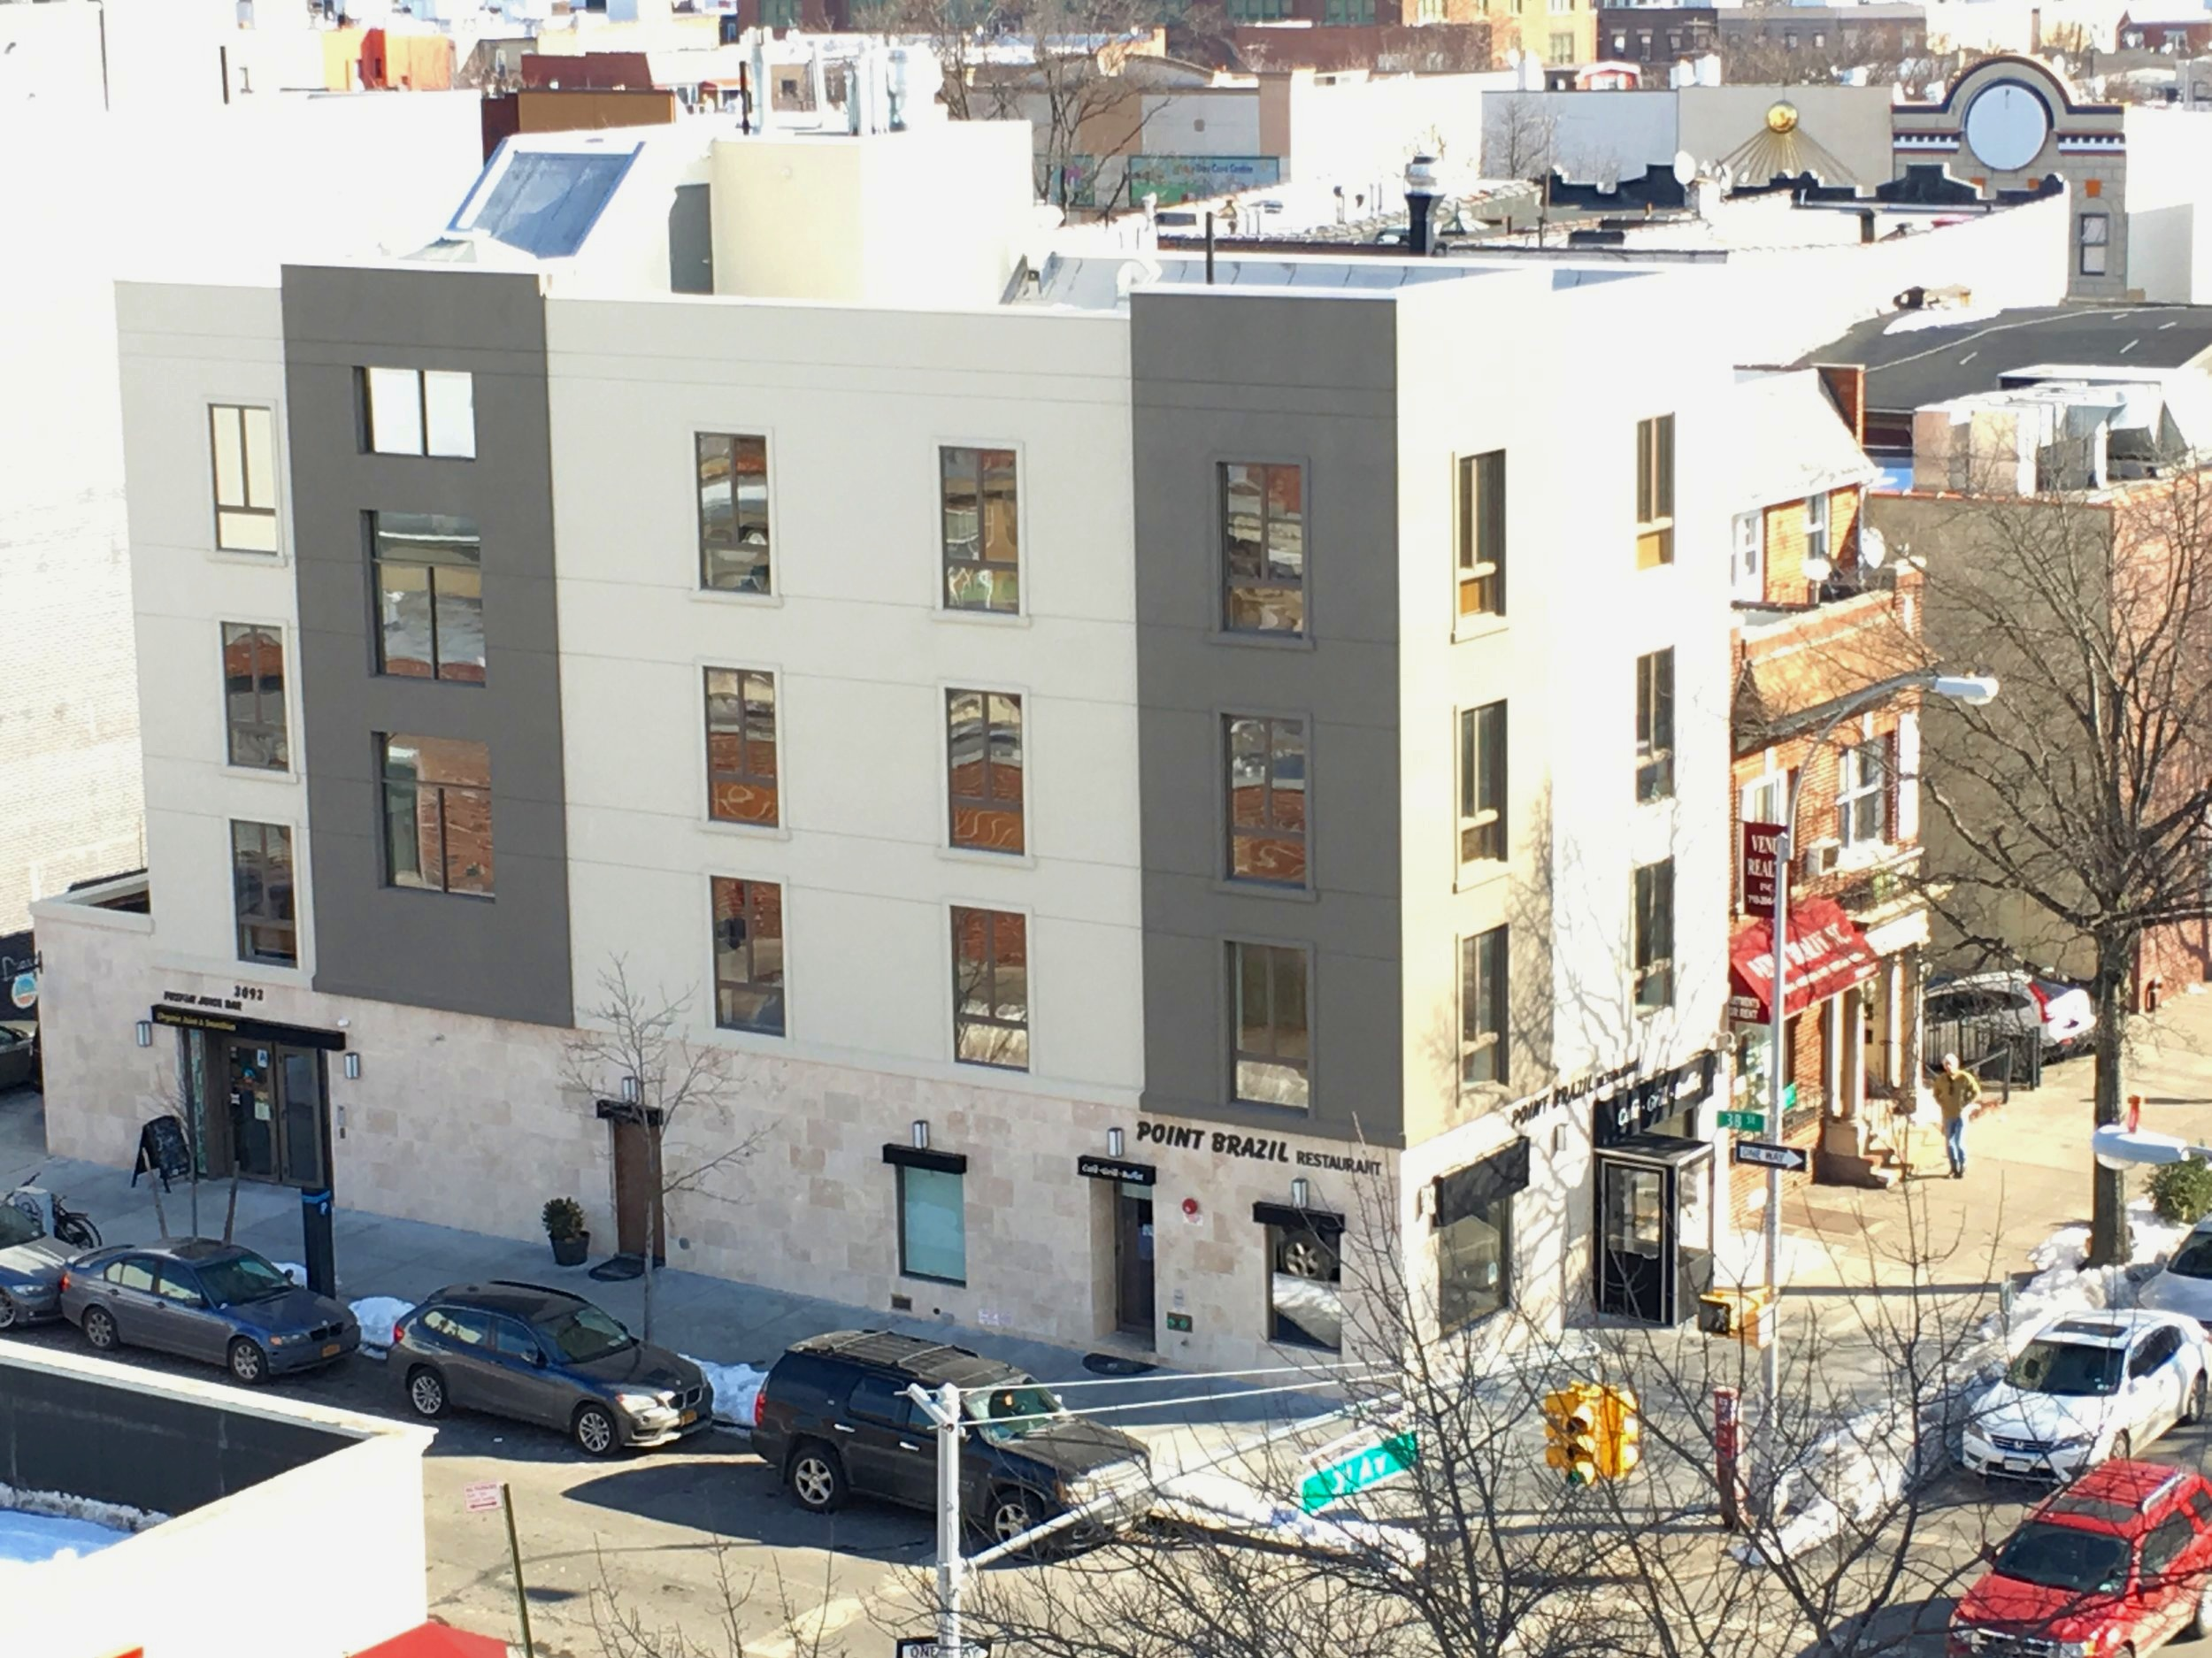 30-93 38th street - Astoria, NYThis gorgeous, brand new building features top of the line appliances and finishes, floor to ceiling windows, and large living spaces. It is located steps from Steinway, restaurants, shopping, a supermarket, and the N/W/R trains.Learn More